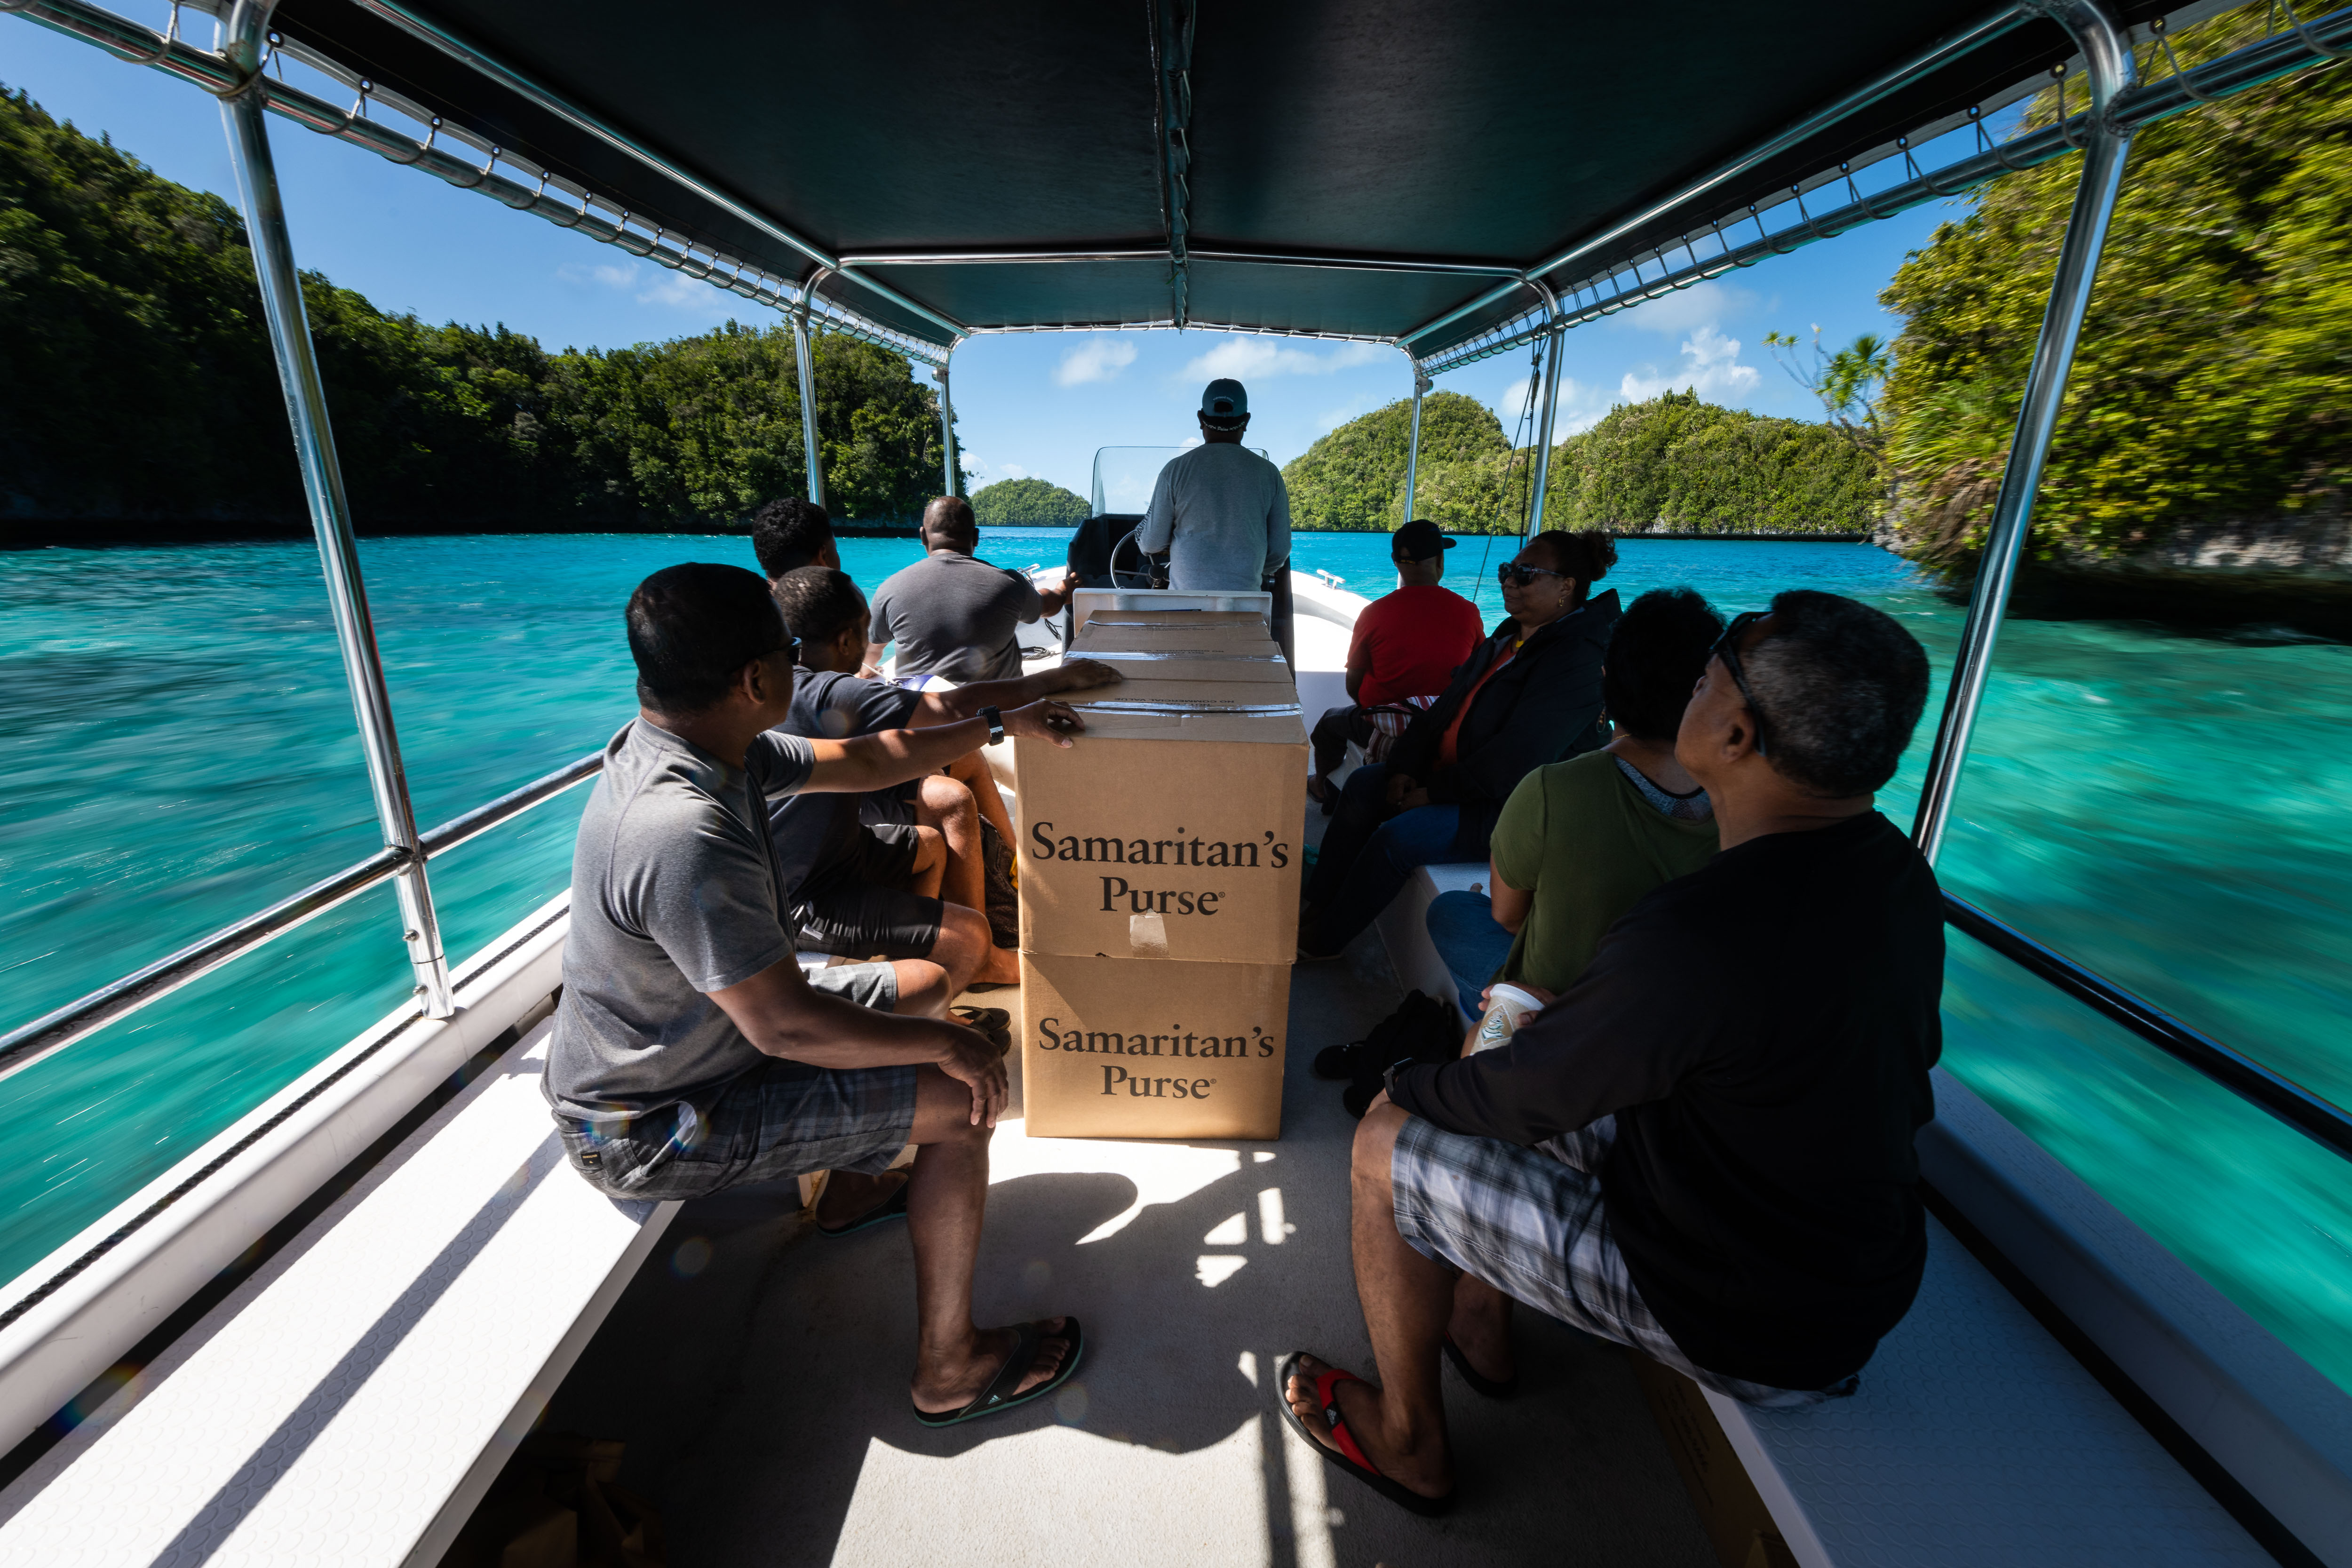 SHOEBOX GIFTS TRAVEL BY CHARTERED BOAT FROM KOROR THROUGH THE ROCK ISLANDS TO PELELIU FOR THE FIRST OUTREACH EVENT IN PALAU.